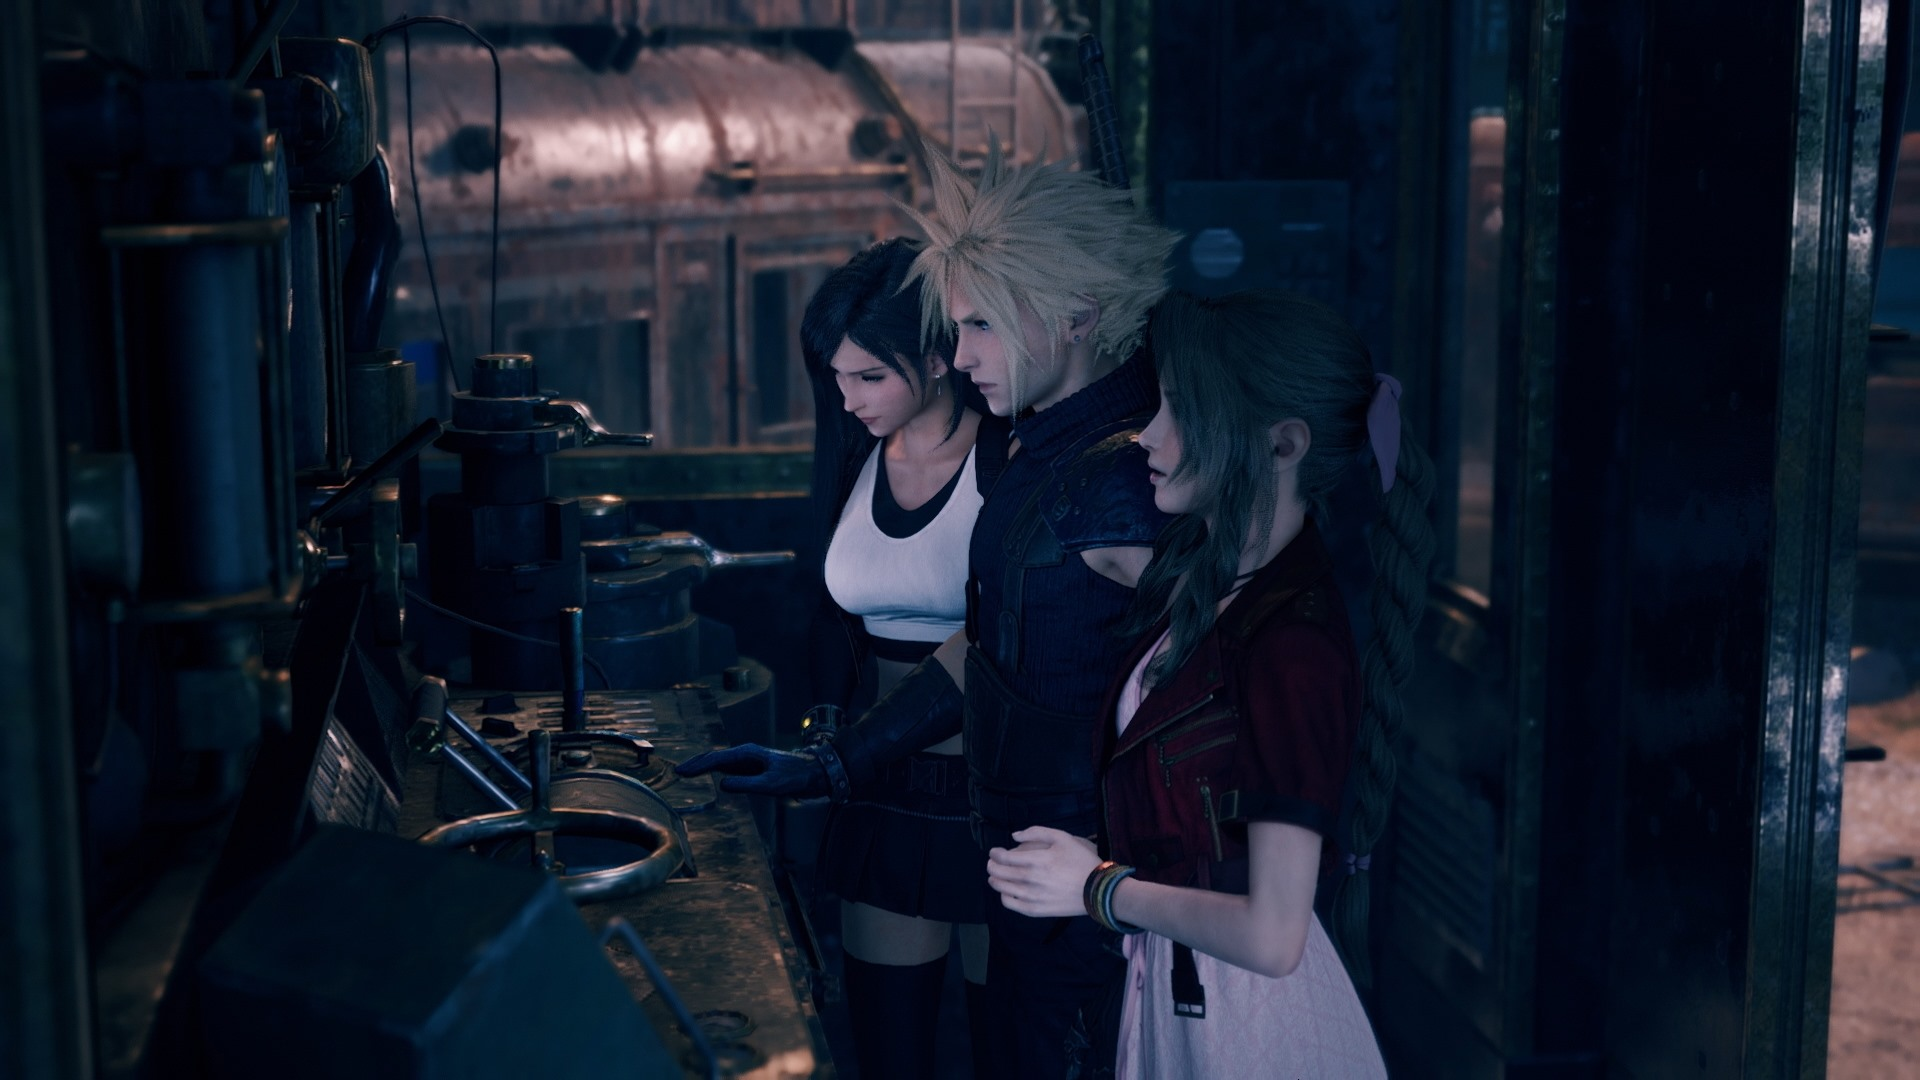 Square Enix announces delays to both Avengers and Final Fantasy 7 Remake, Square Enix announces delays to both Avengers and Final Fantasy 7 Remake, Gadget Pilipinas, Gadget Pilipinas